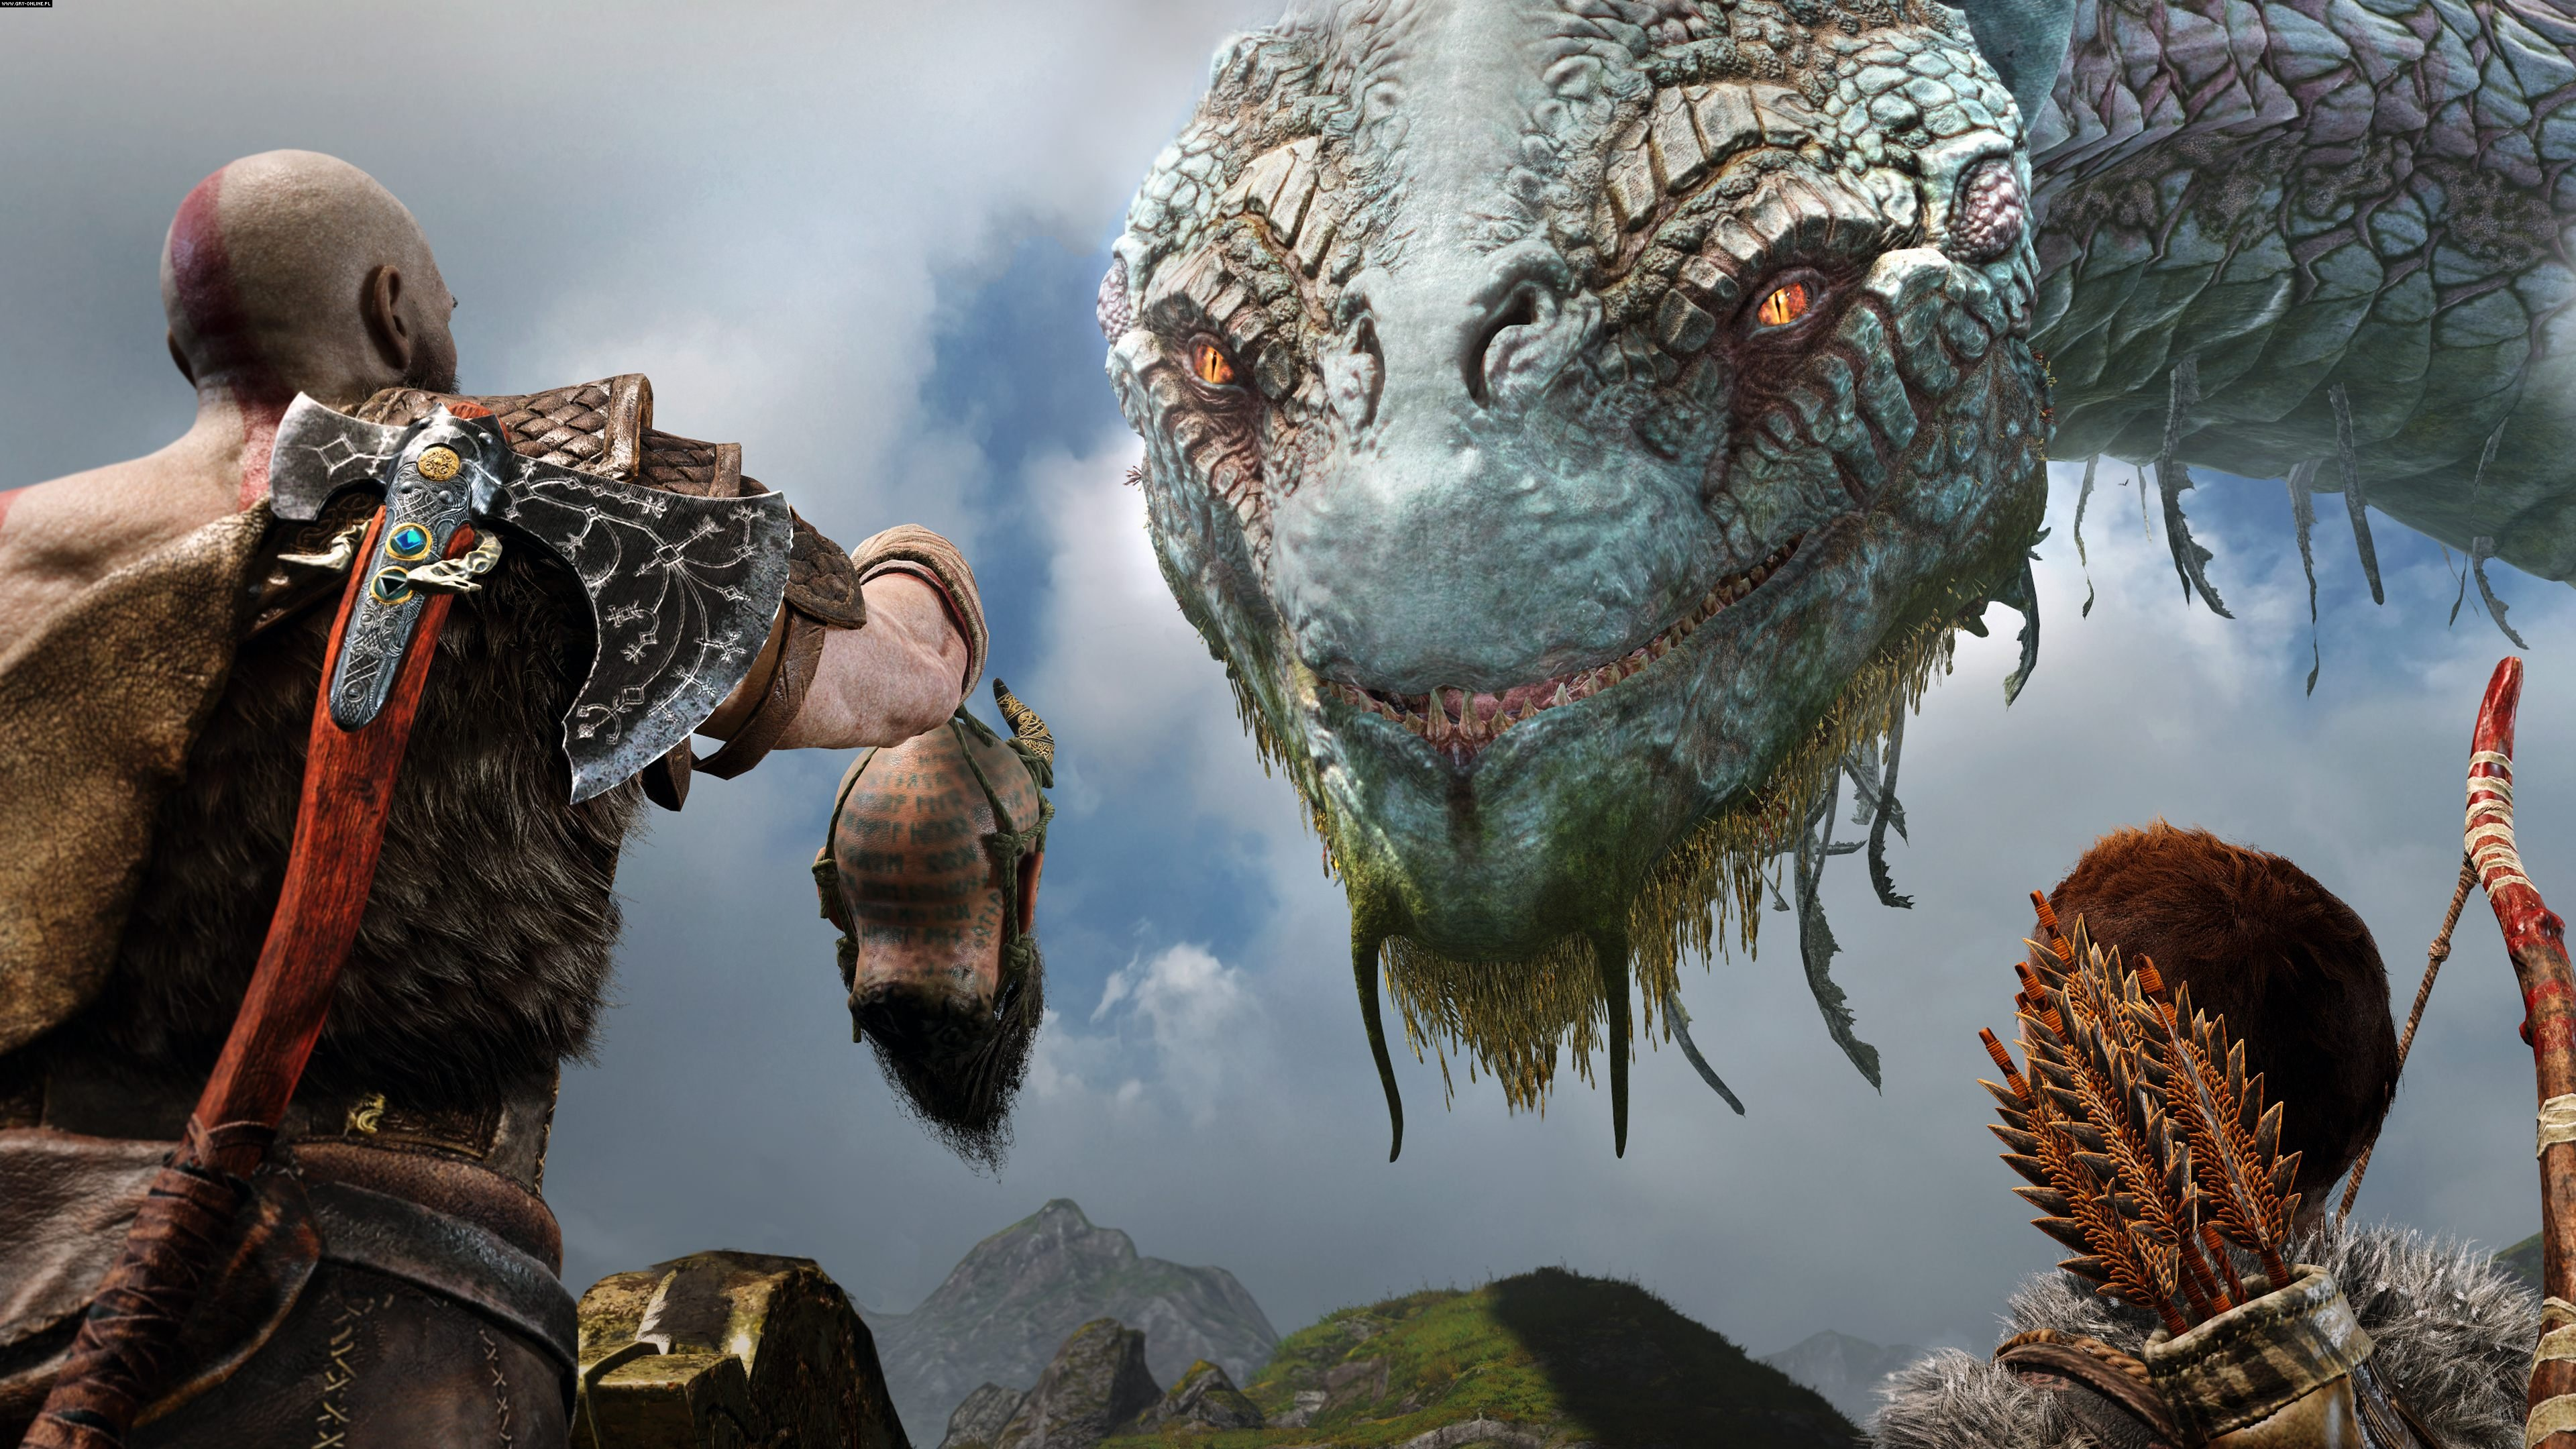 God of War PS4 Games Image 13/33, Sony Interactive Entertainment